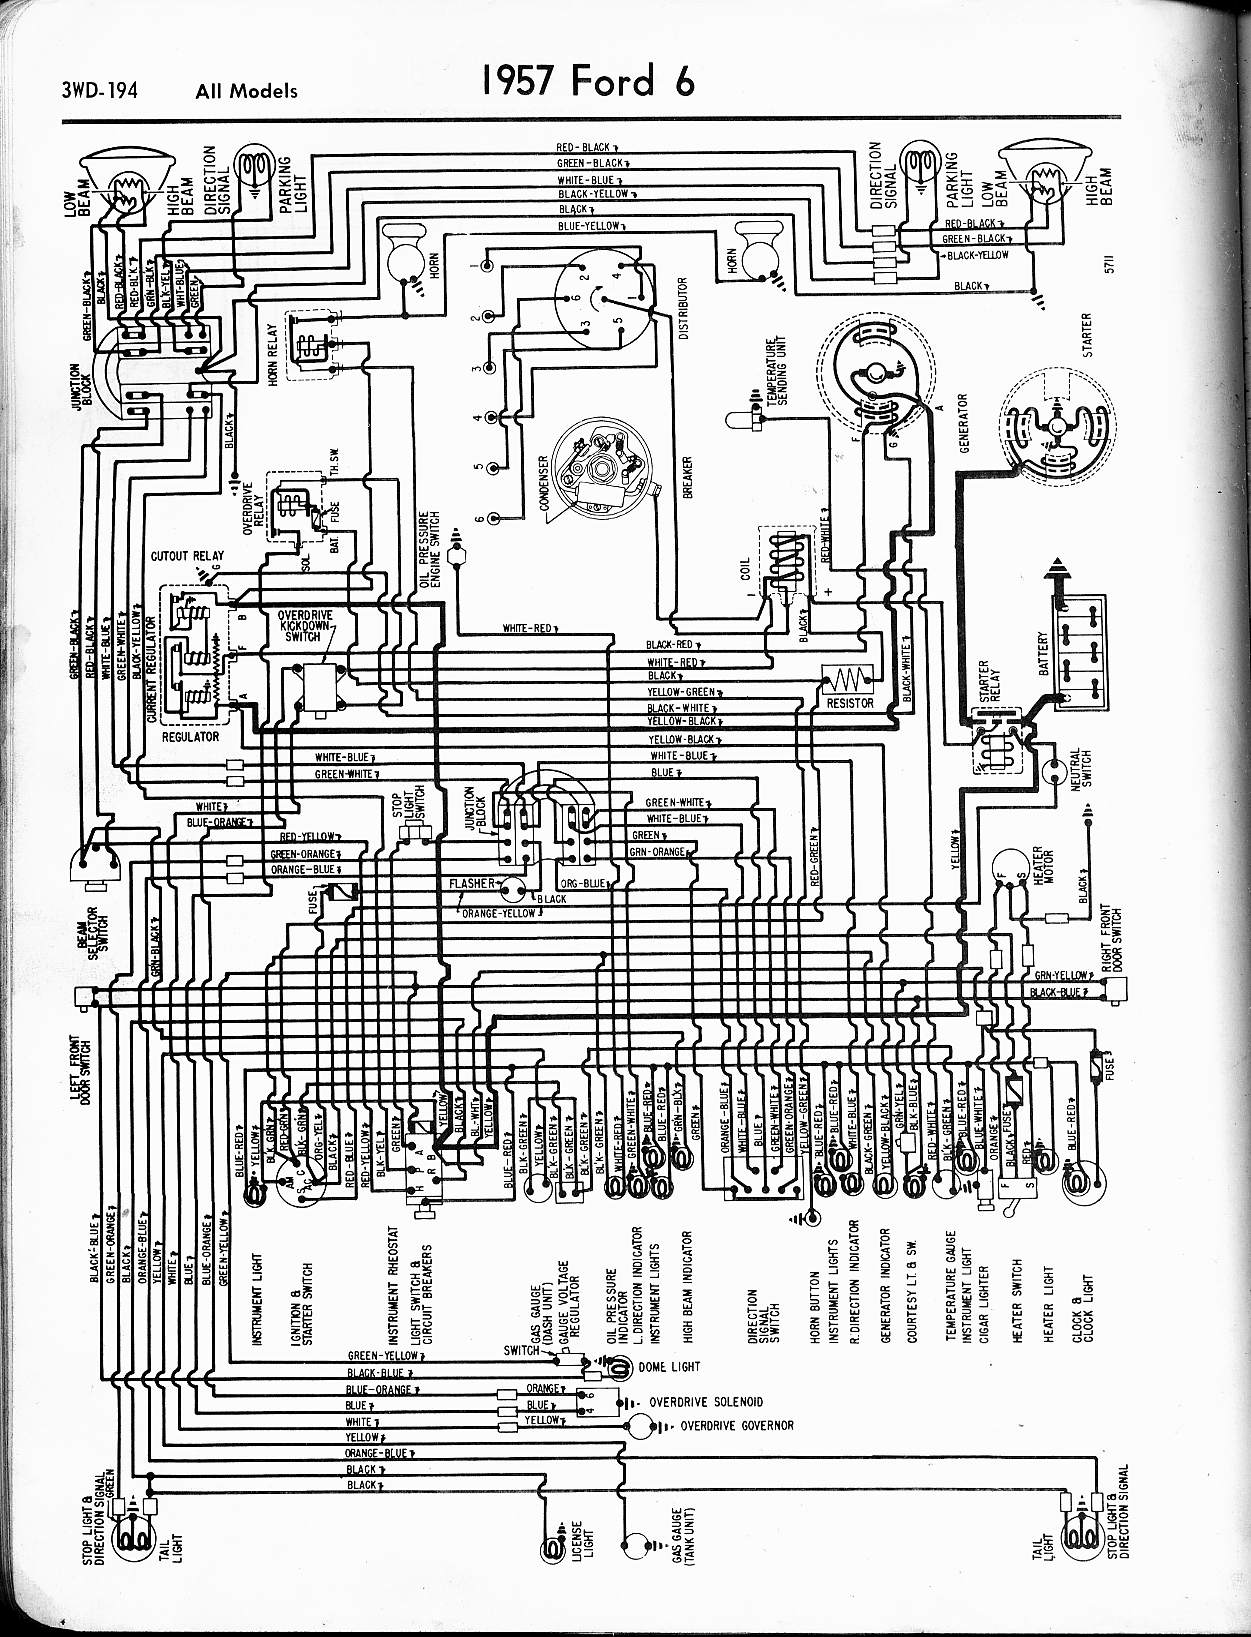 Torino 1973 Ford Choke Wiring Diagram List Of Schematic Circuit 1969 Truck Diagrams Rh Wizard Com